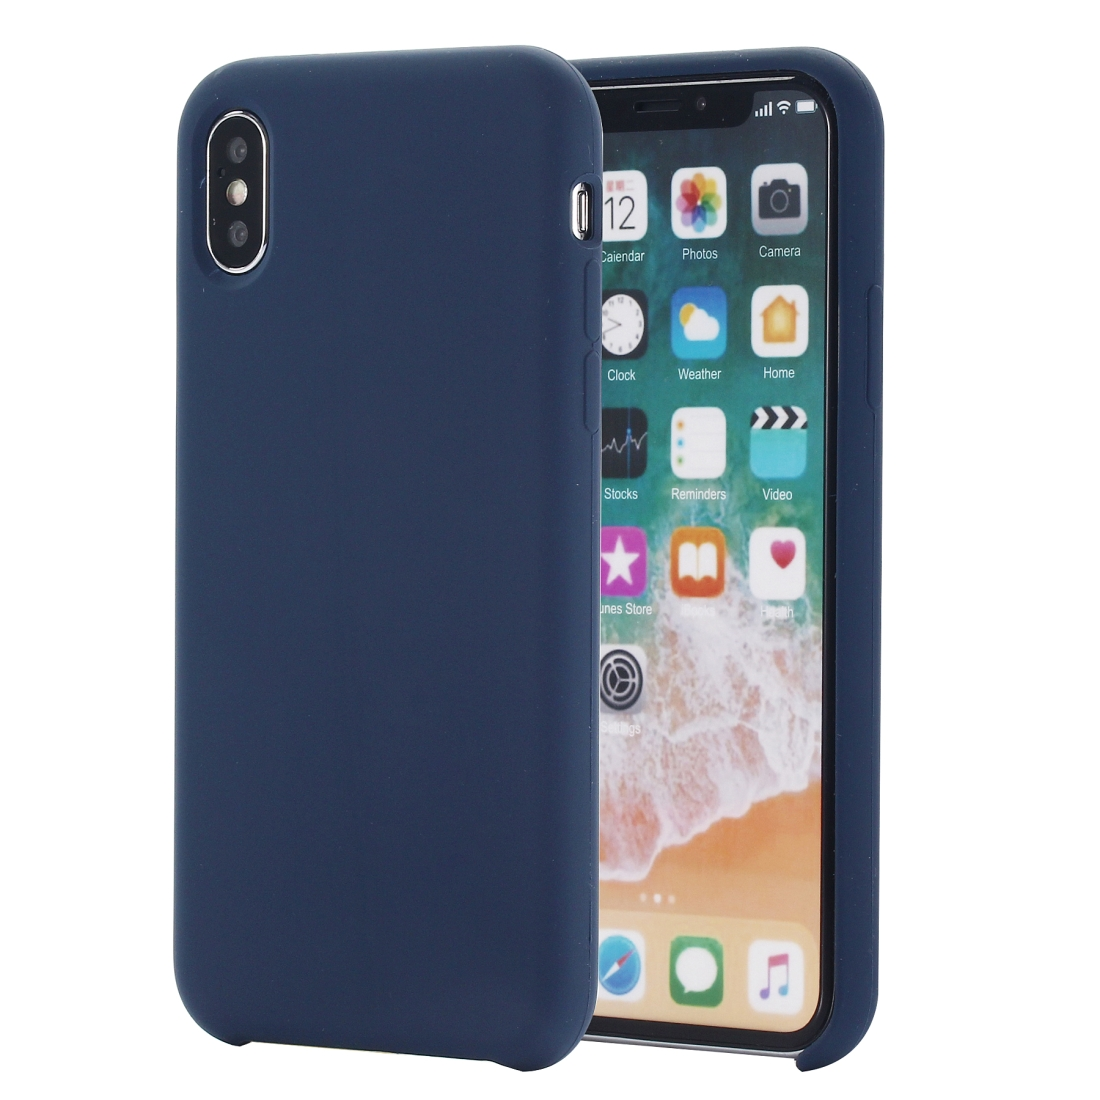 Four Corners Full Coverage Liquid Silicone Protective Case Back Cover for iPhone XS Max 6.5 inch (Blue)